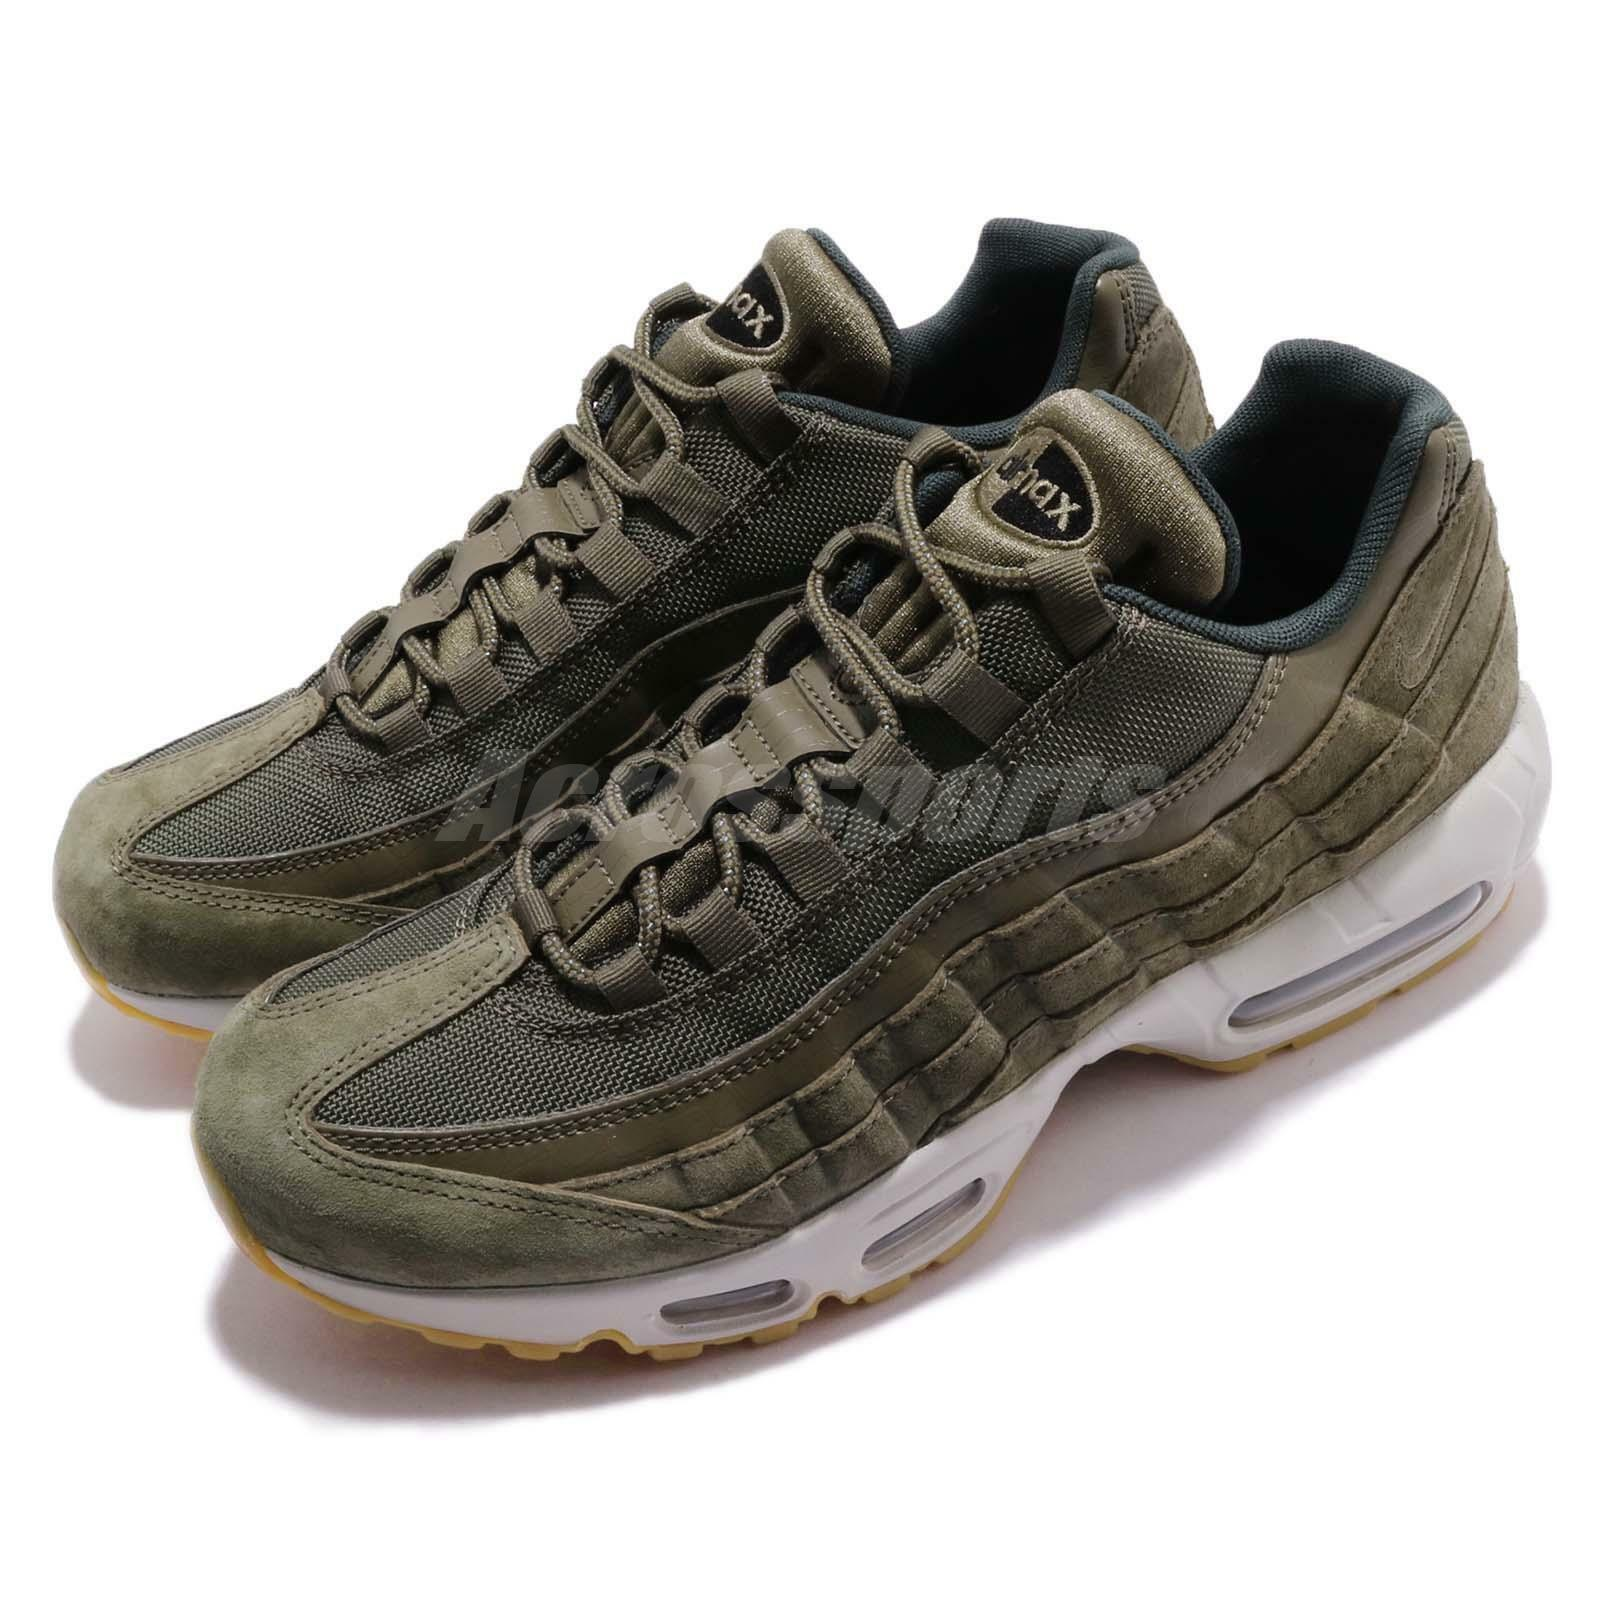 Nike Air Max 95 Canvas SE Olive Canvas 95 Gum   Running Casual Shoes Sneakers AJ2018-300 0f466f